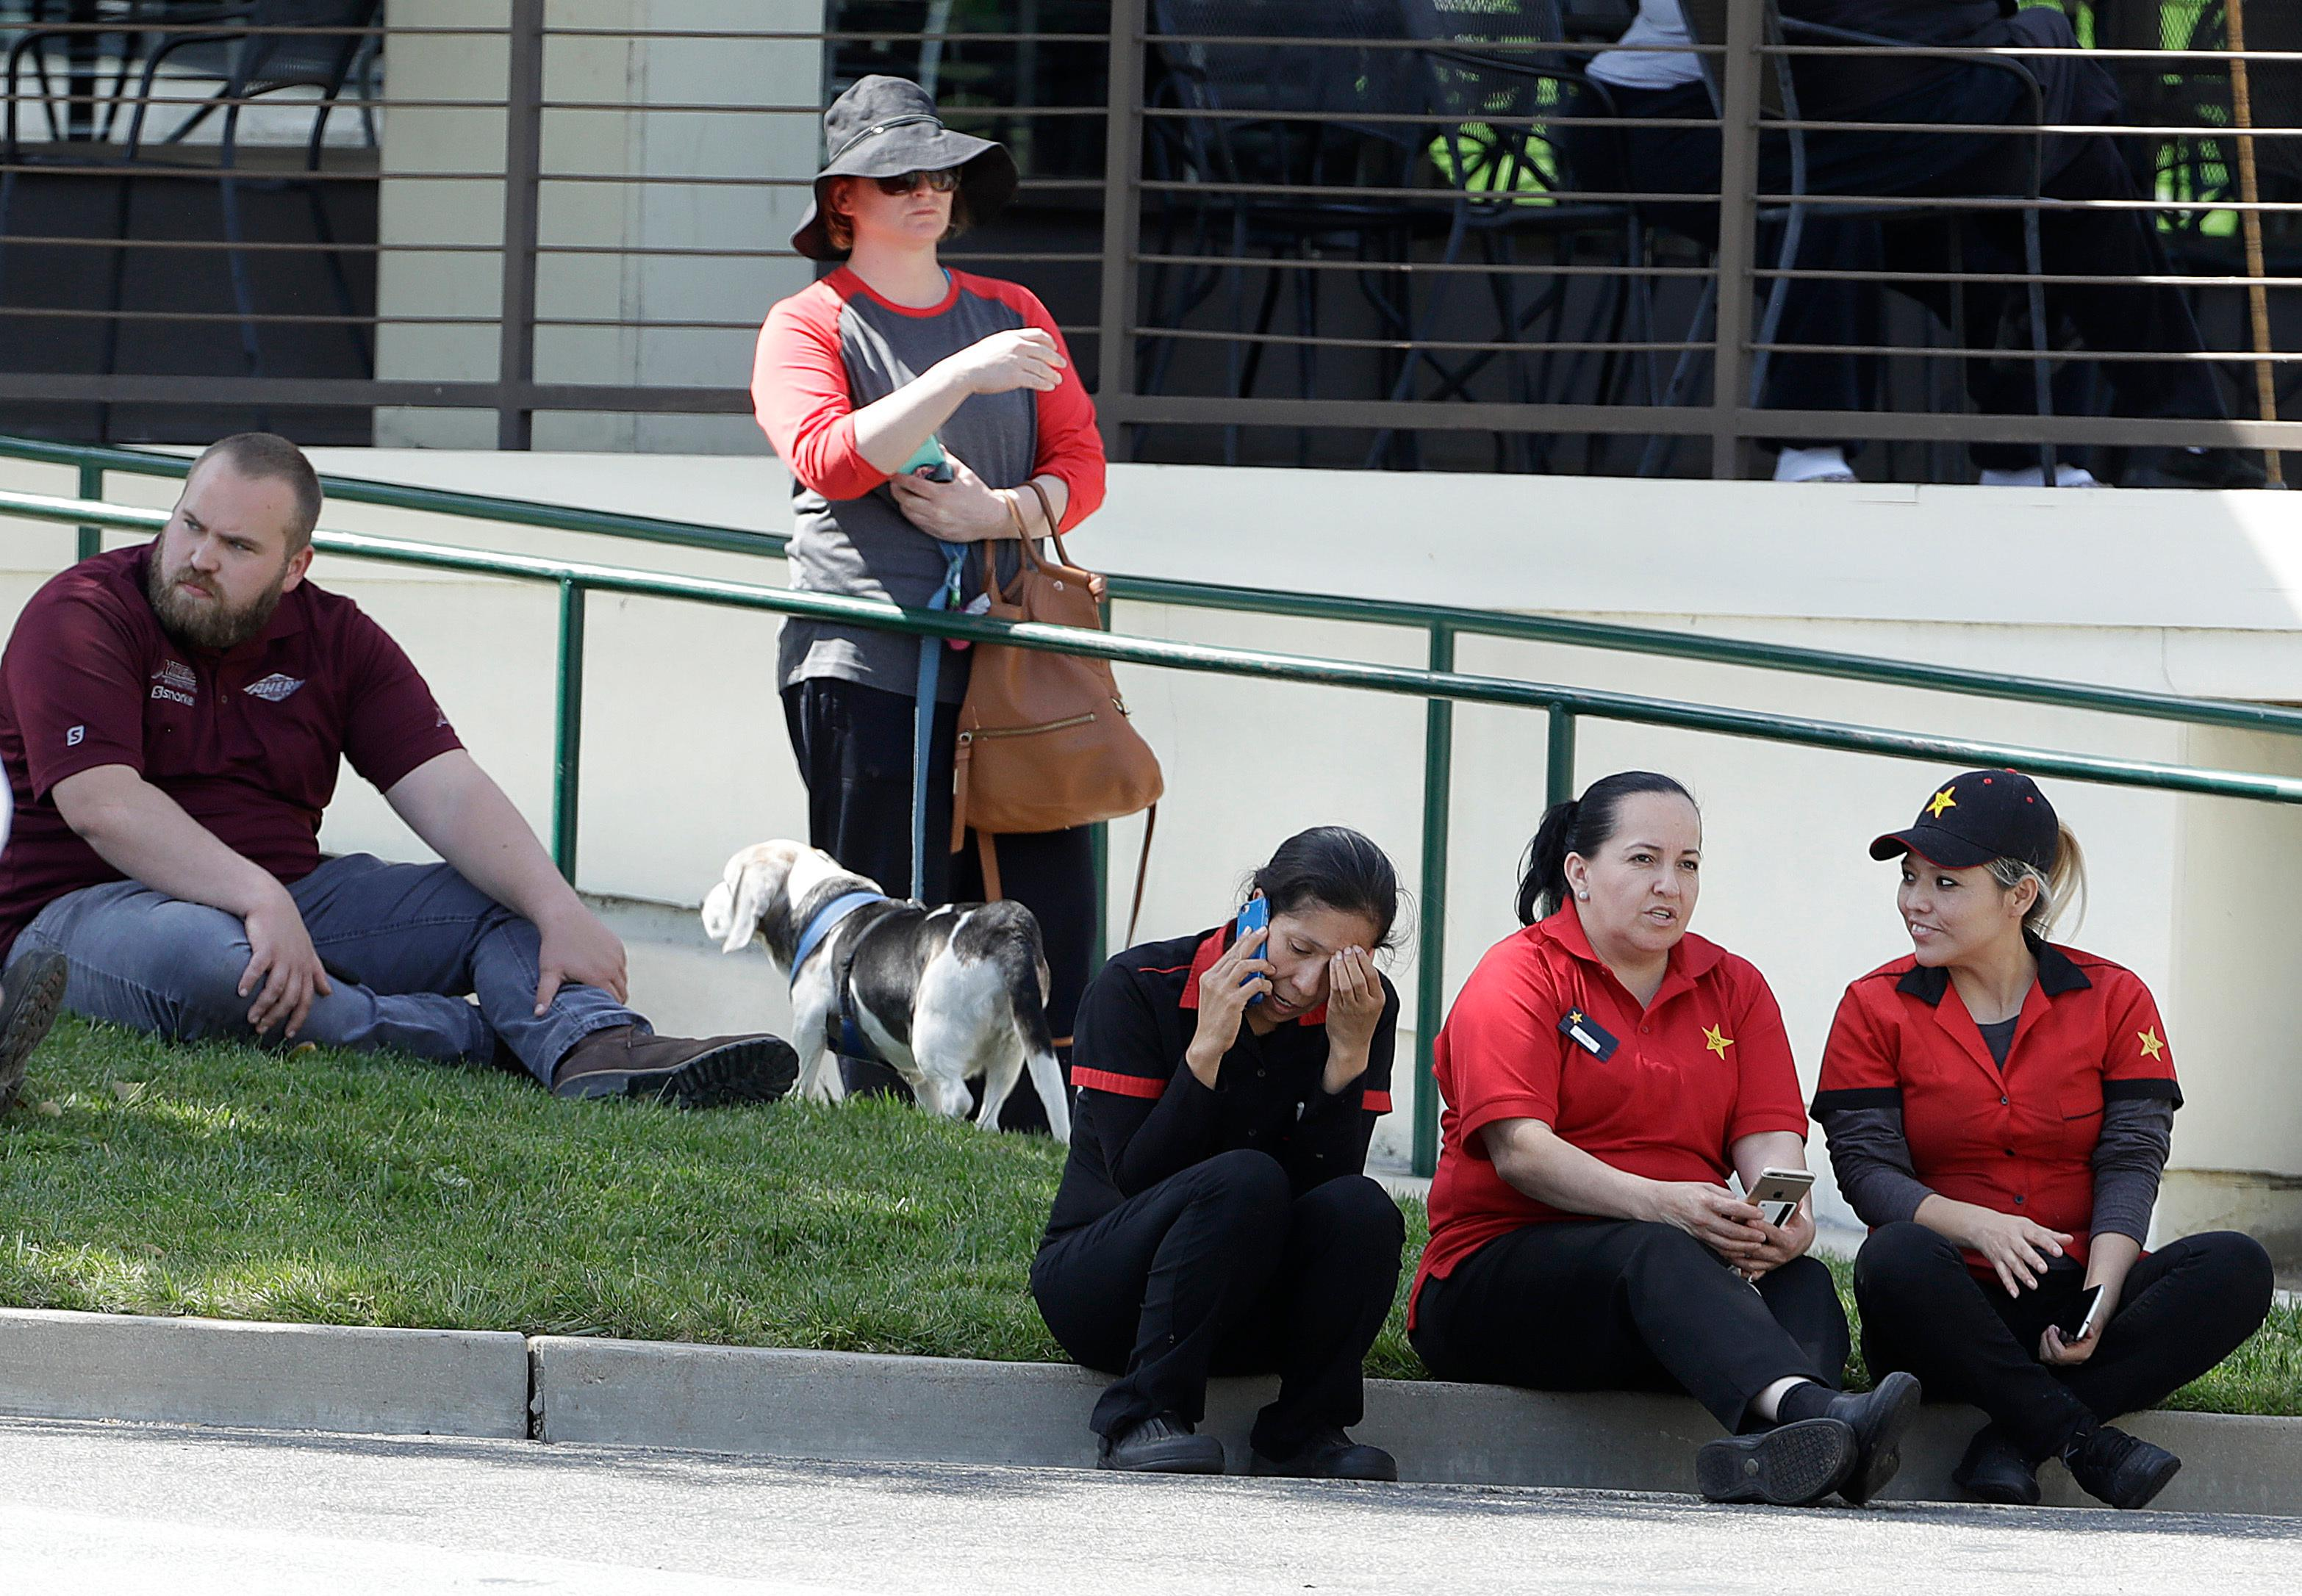 Carl's Jr. workers and others sit in a shopping center parking lot near YouTube's offices in San Bruno, Calif., Tuesday, April 3, 2018. A woman opened fire at YouTube headquarters Tuesday, setting off a panic among employees and wounding several people before fatally shooting herself, police and witnesses said. (AP Photo/Jeff Chiu)